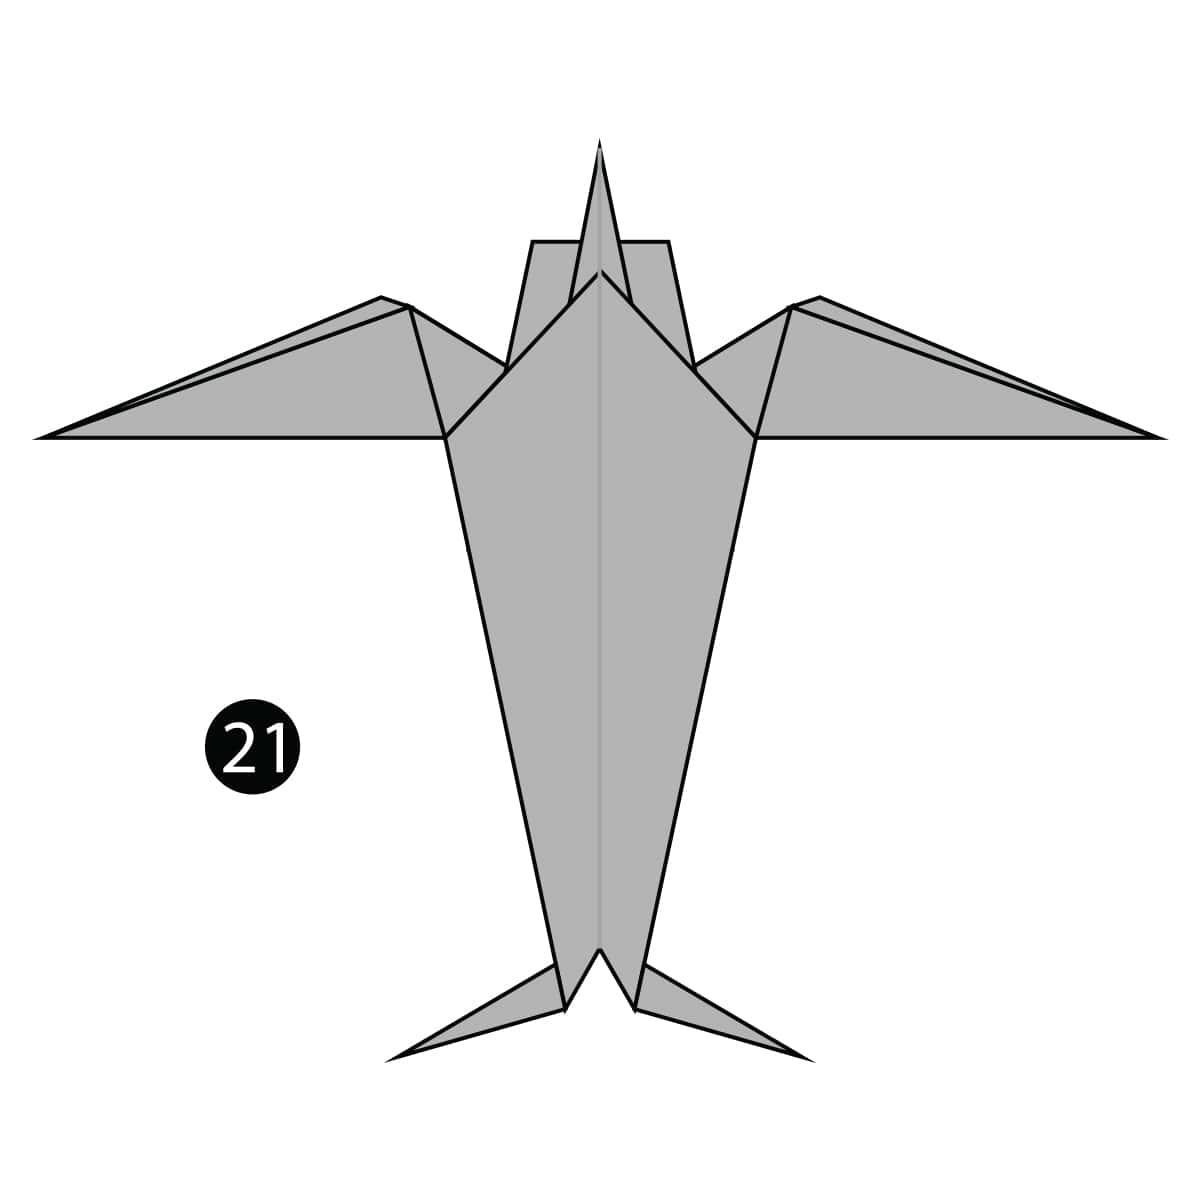 Origami Swallow Bird | How to Make a Traditional Origami Swallow ... | 1200x1200